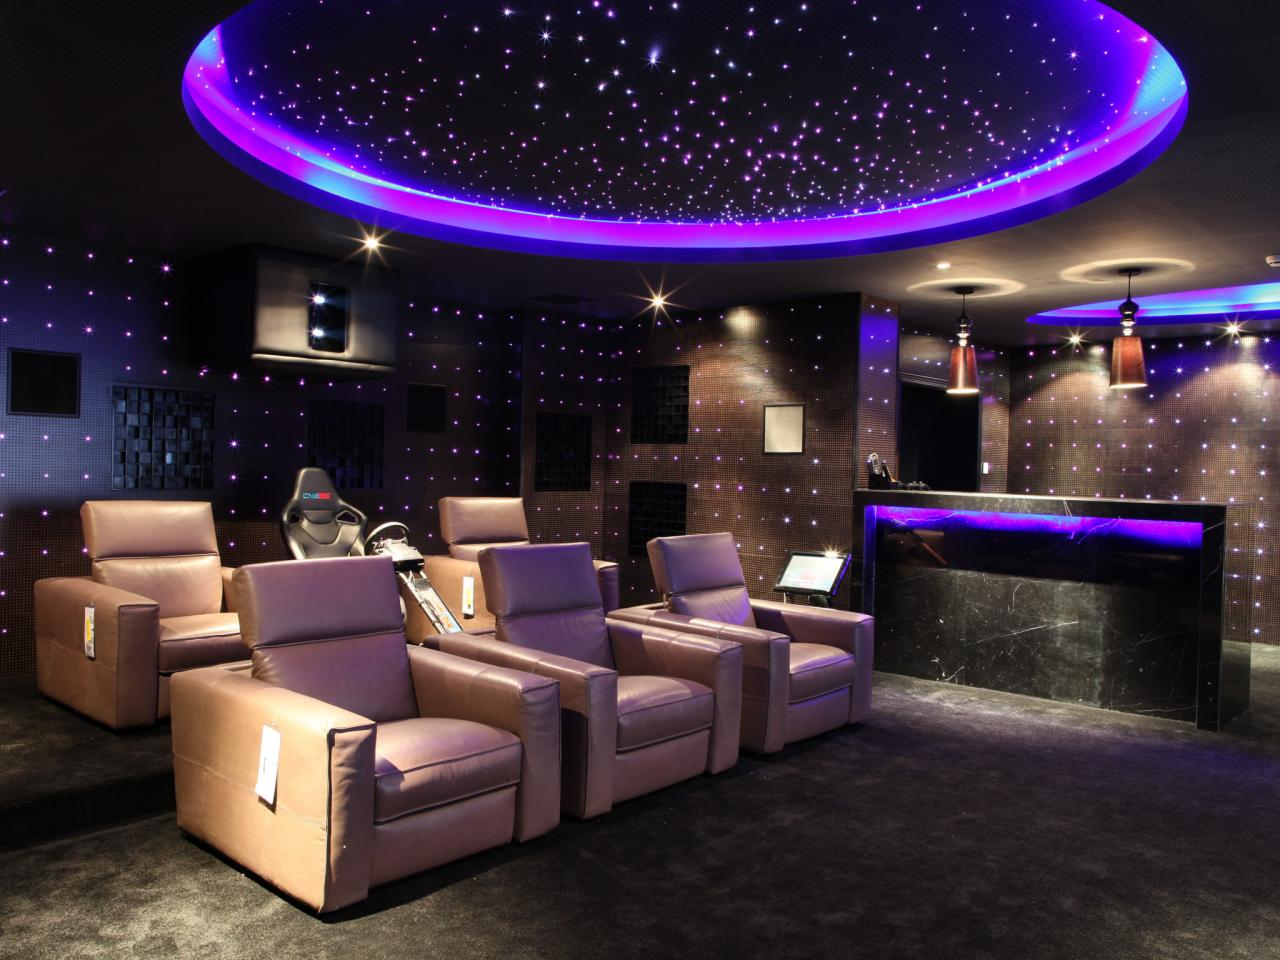 Home Theater Design Ideas: Pictures, Tips & Options | Home ...